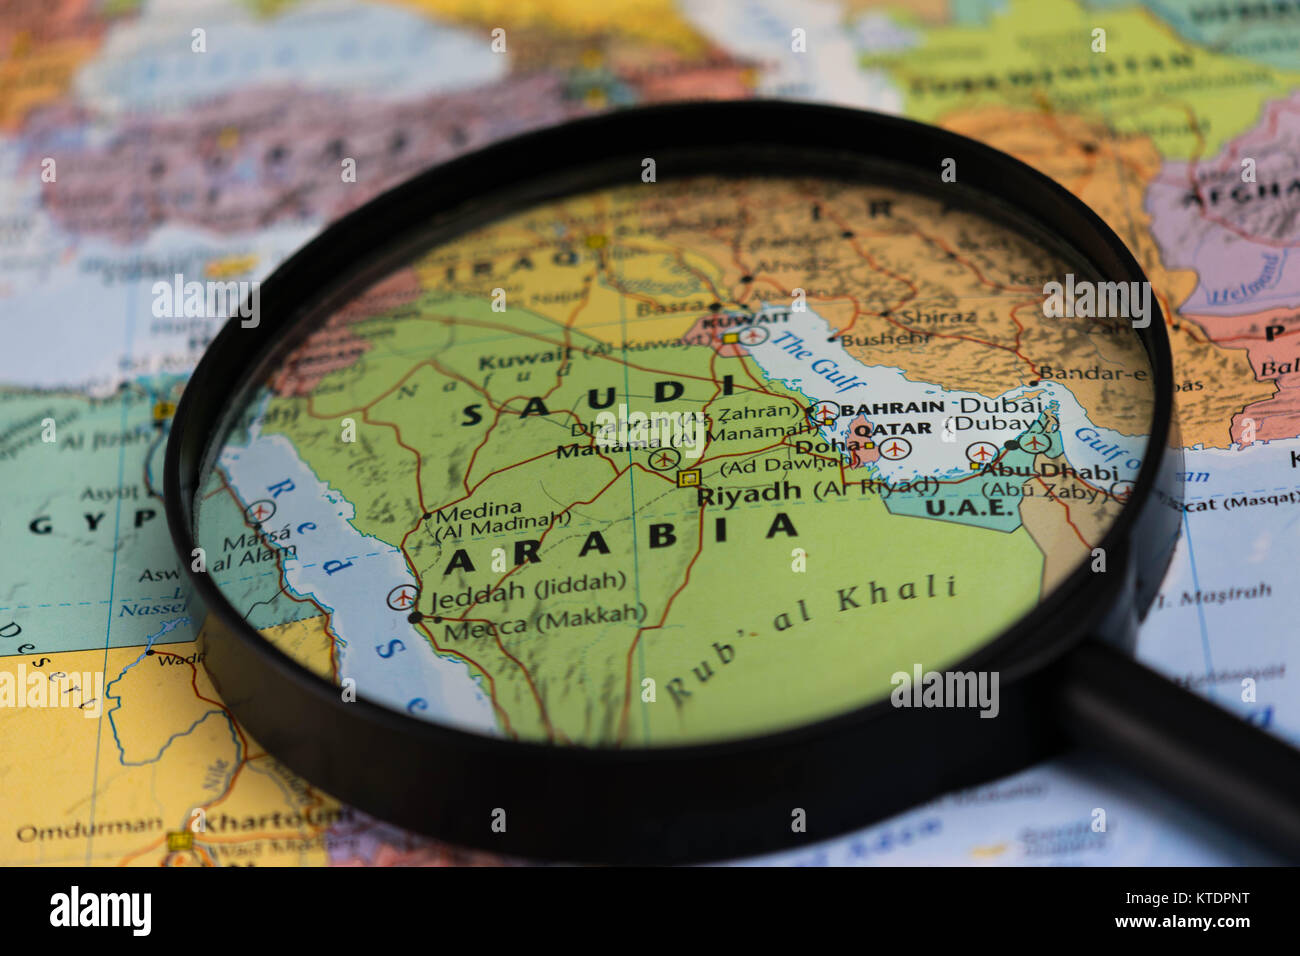 Magnify glass on a world map magnify stock photos magnify glass on saudi arabia map through magnifying glass on a world map stock image gumiabroncs Image collections